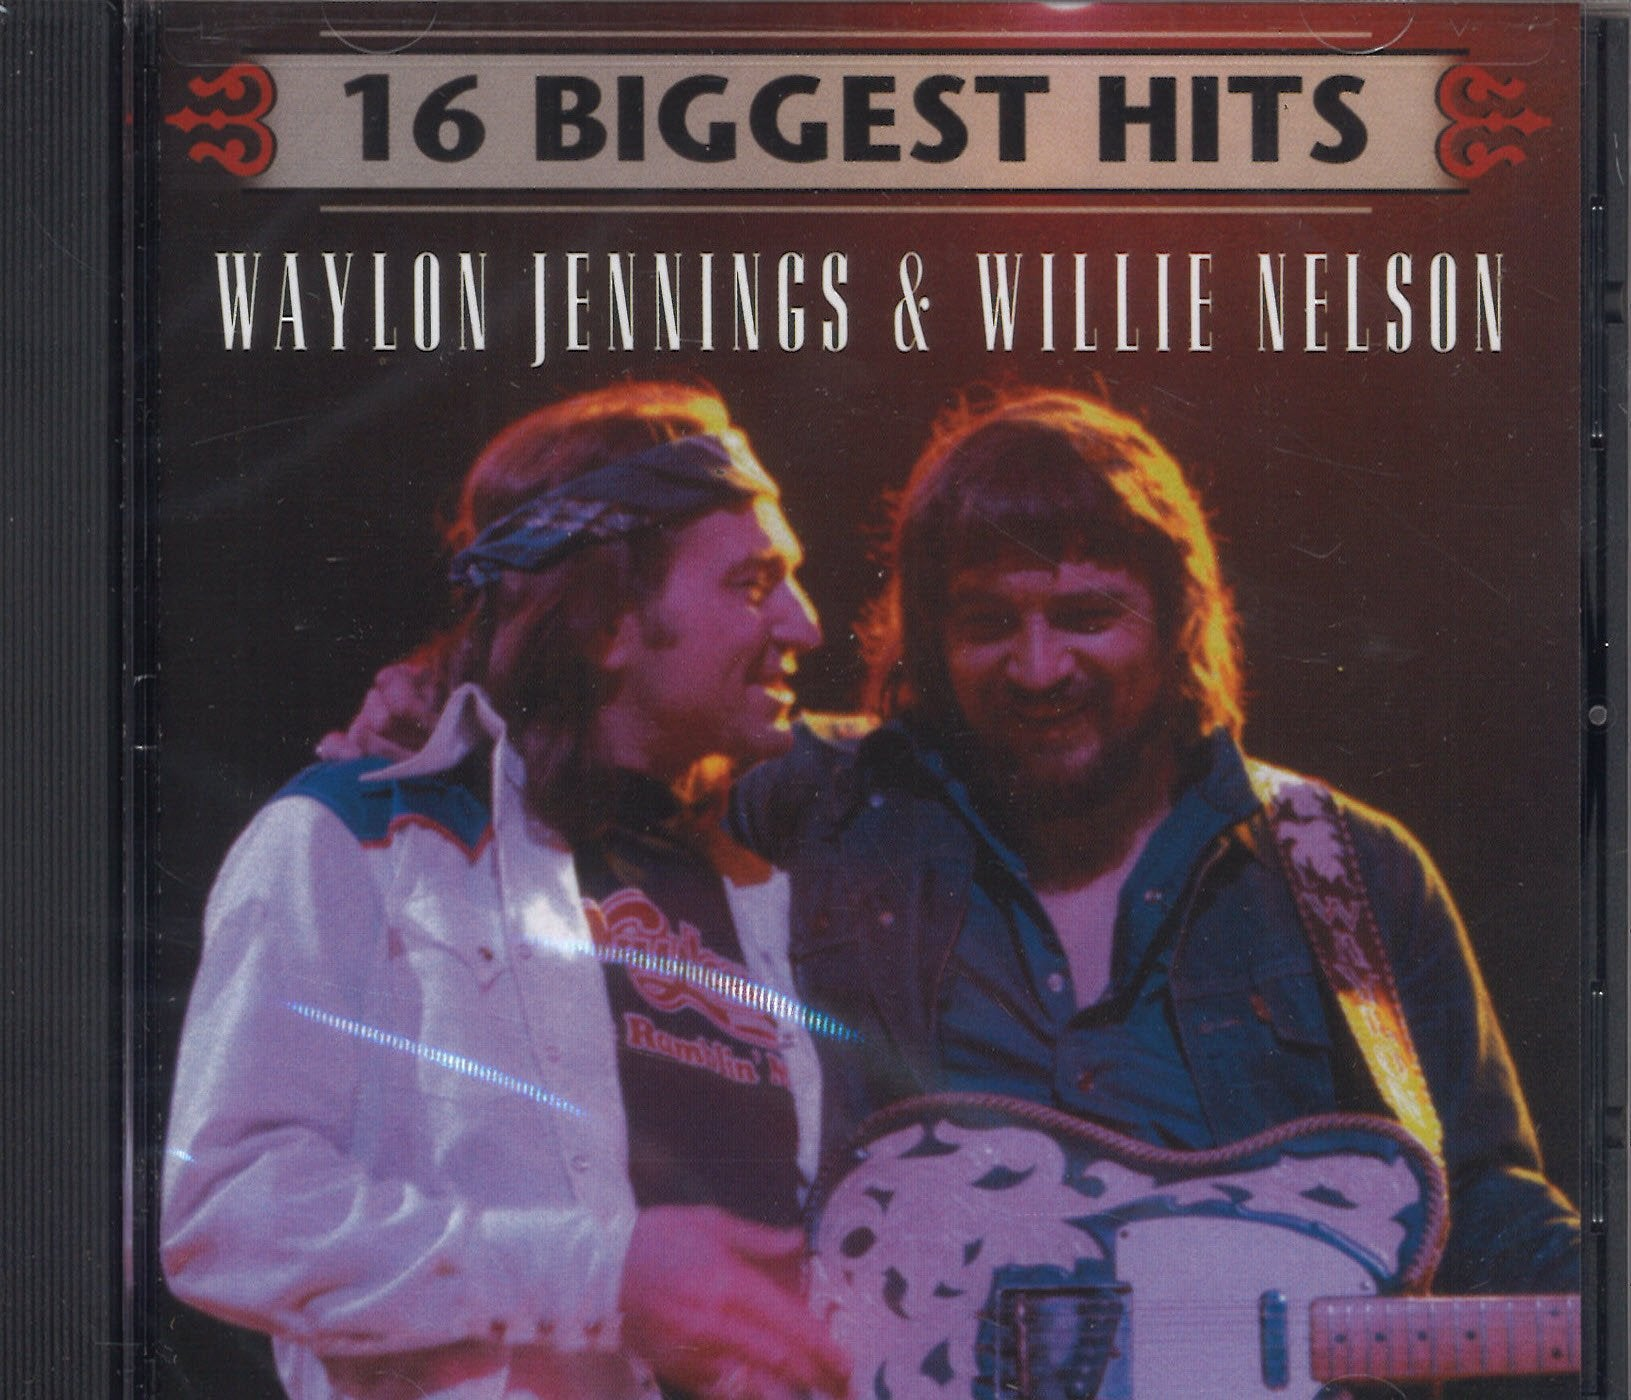 Waylon Jennings & Willie Nelson 16 Biggest Hits